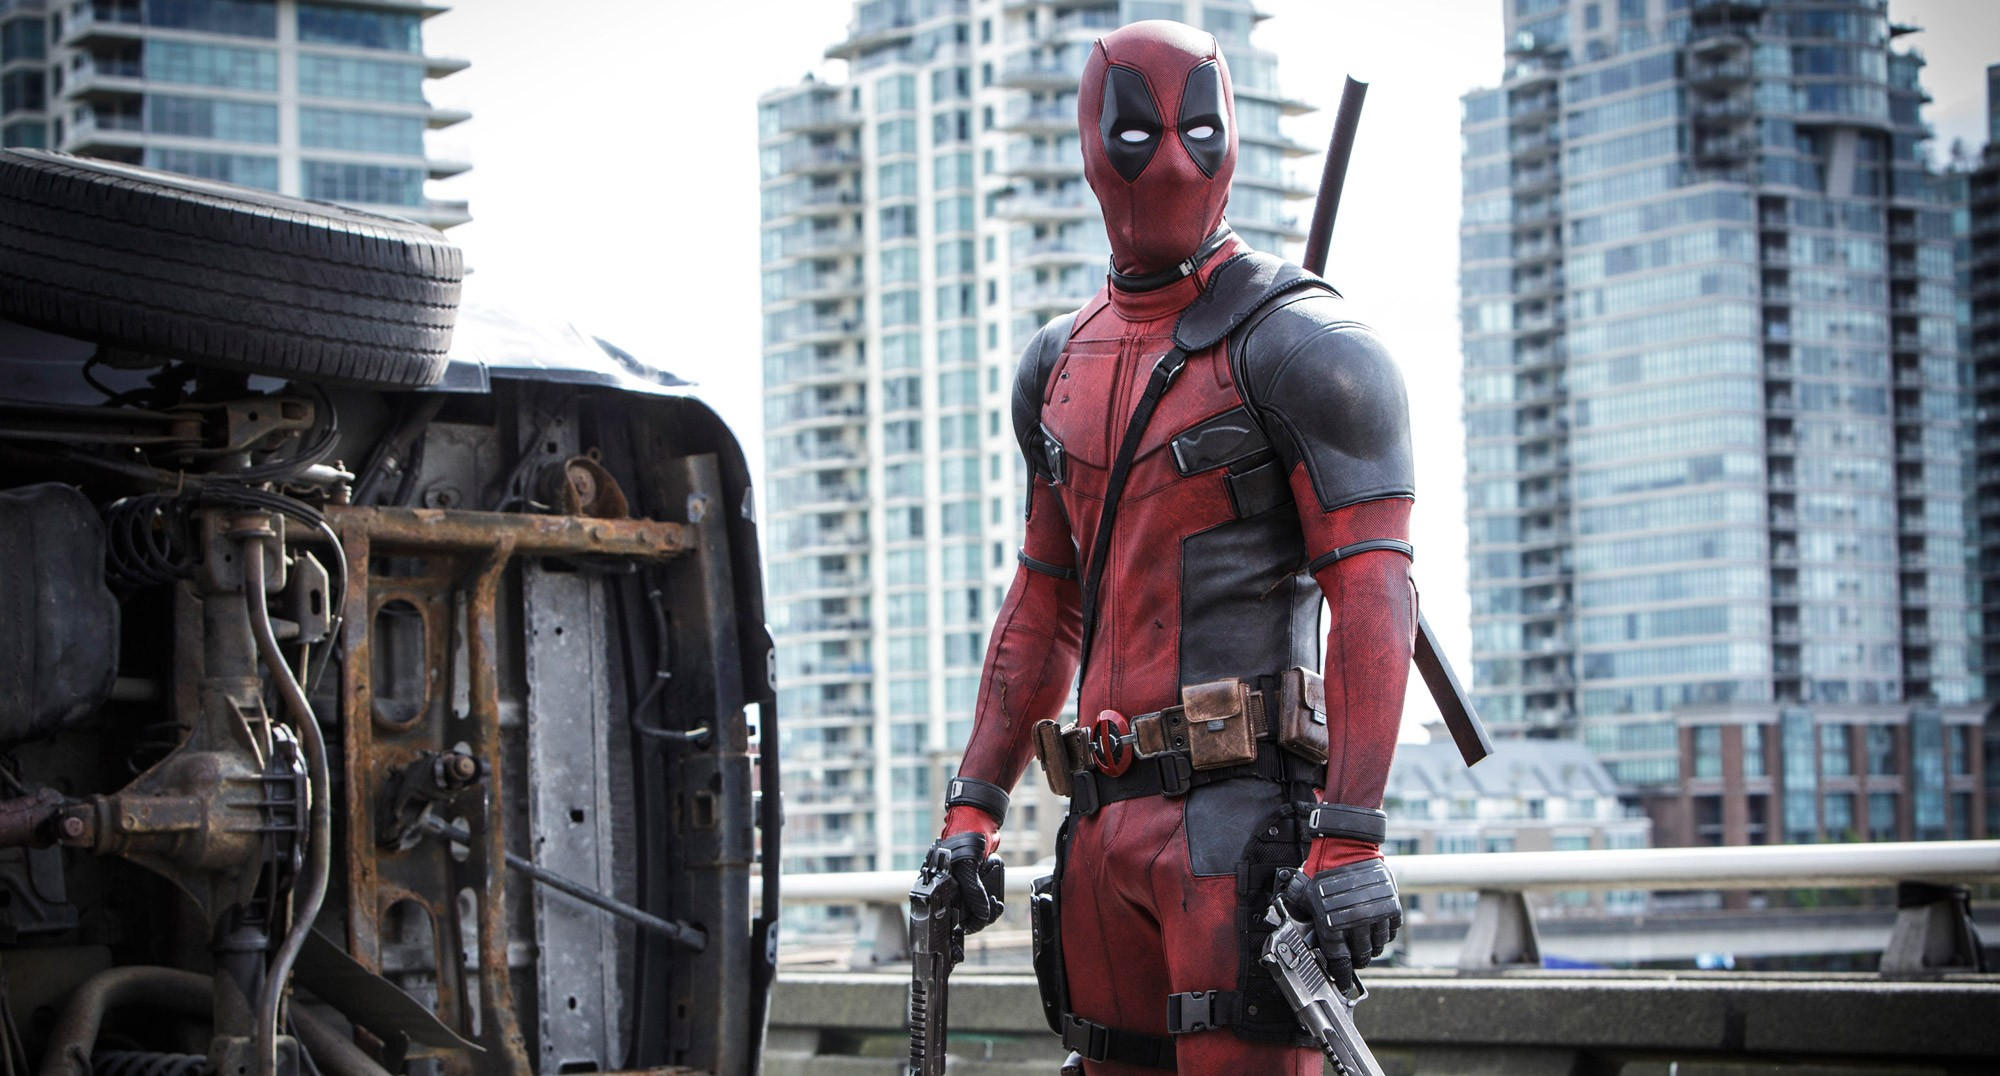 Being rated R was just a delightful bonus for Deadpool. The fact that it made fun of other action and comic book movies while talking to the audience the whole time is what really sold it to the public.